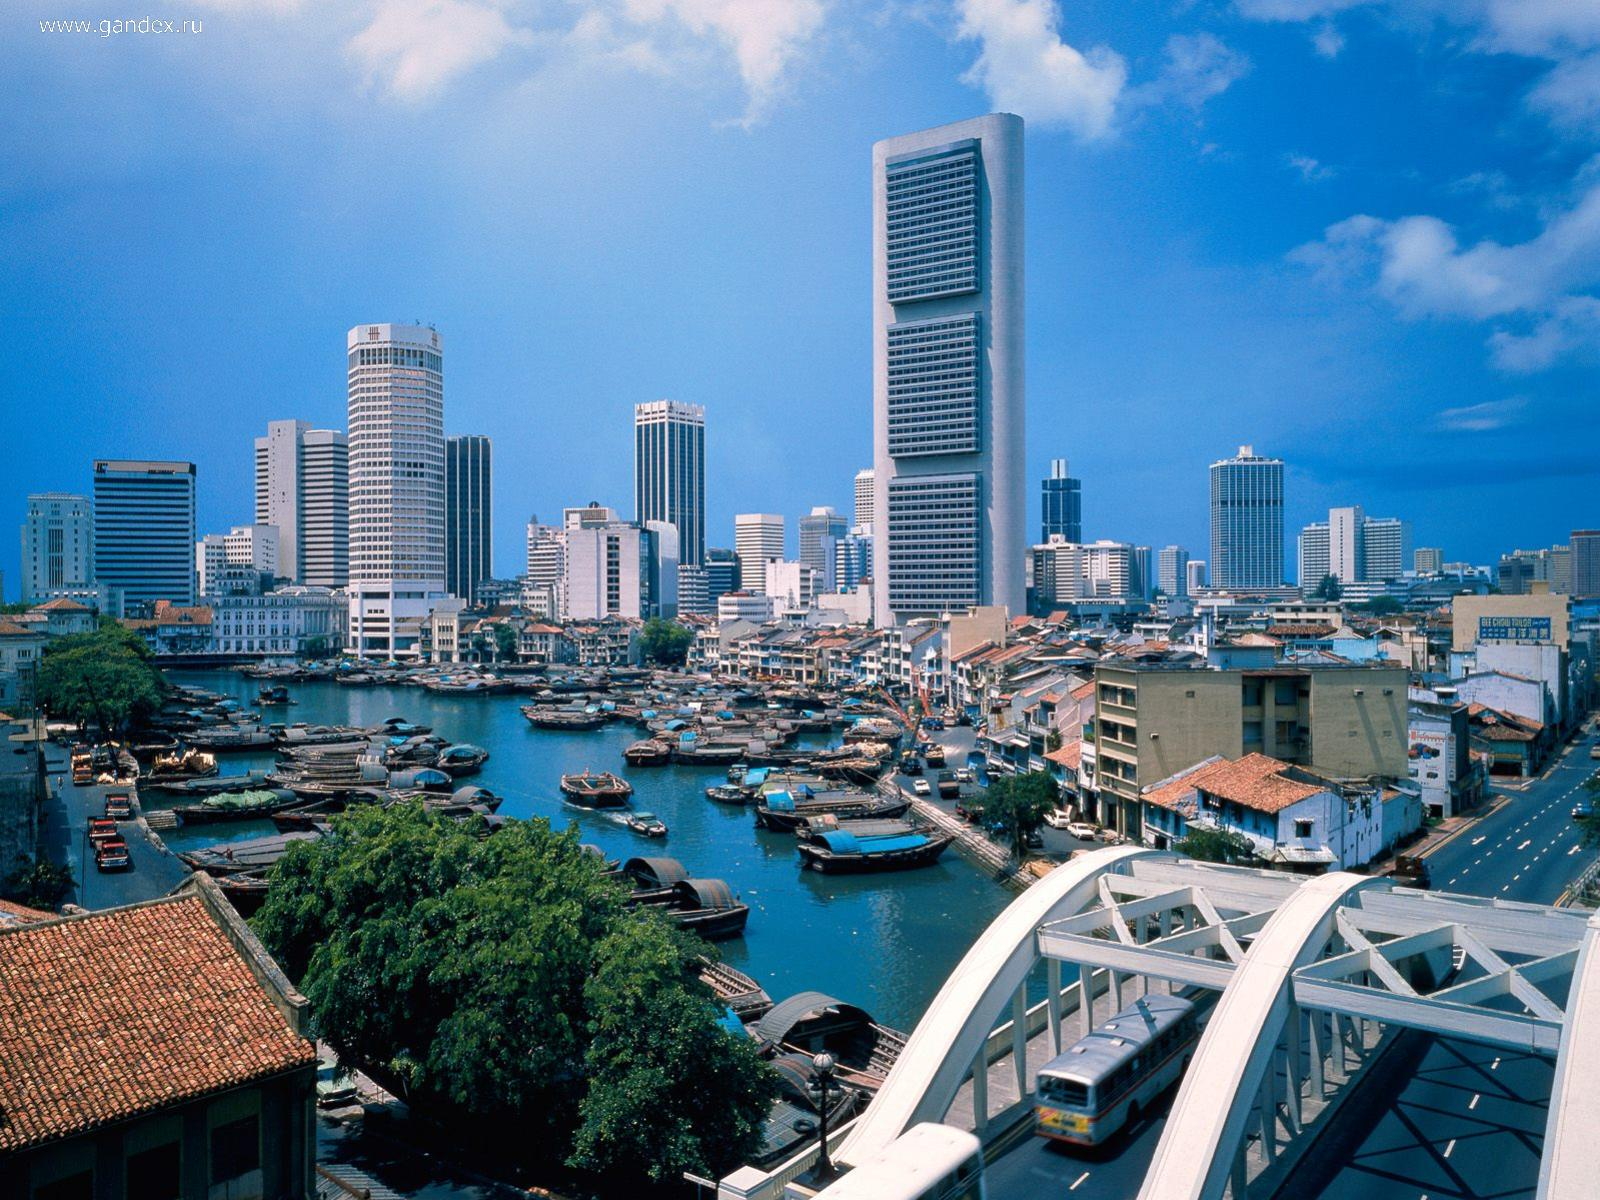 Singapore River in Singapore, the city wallpaper.